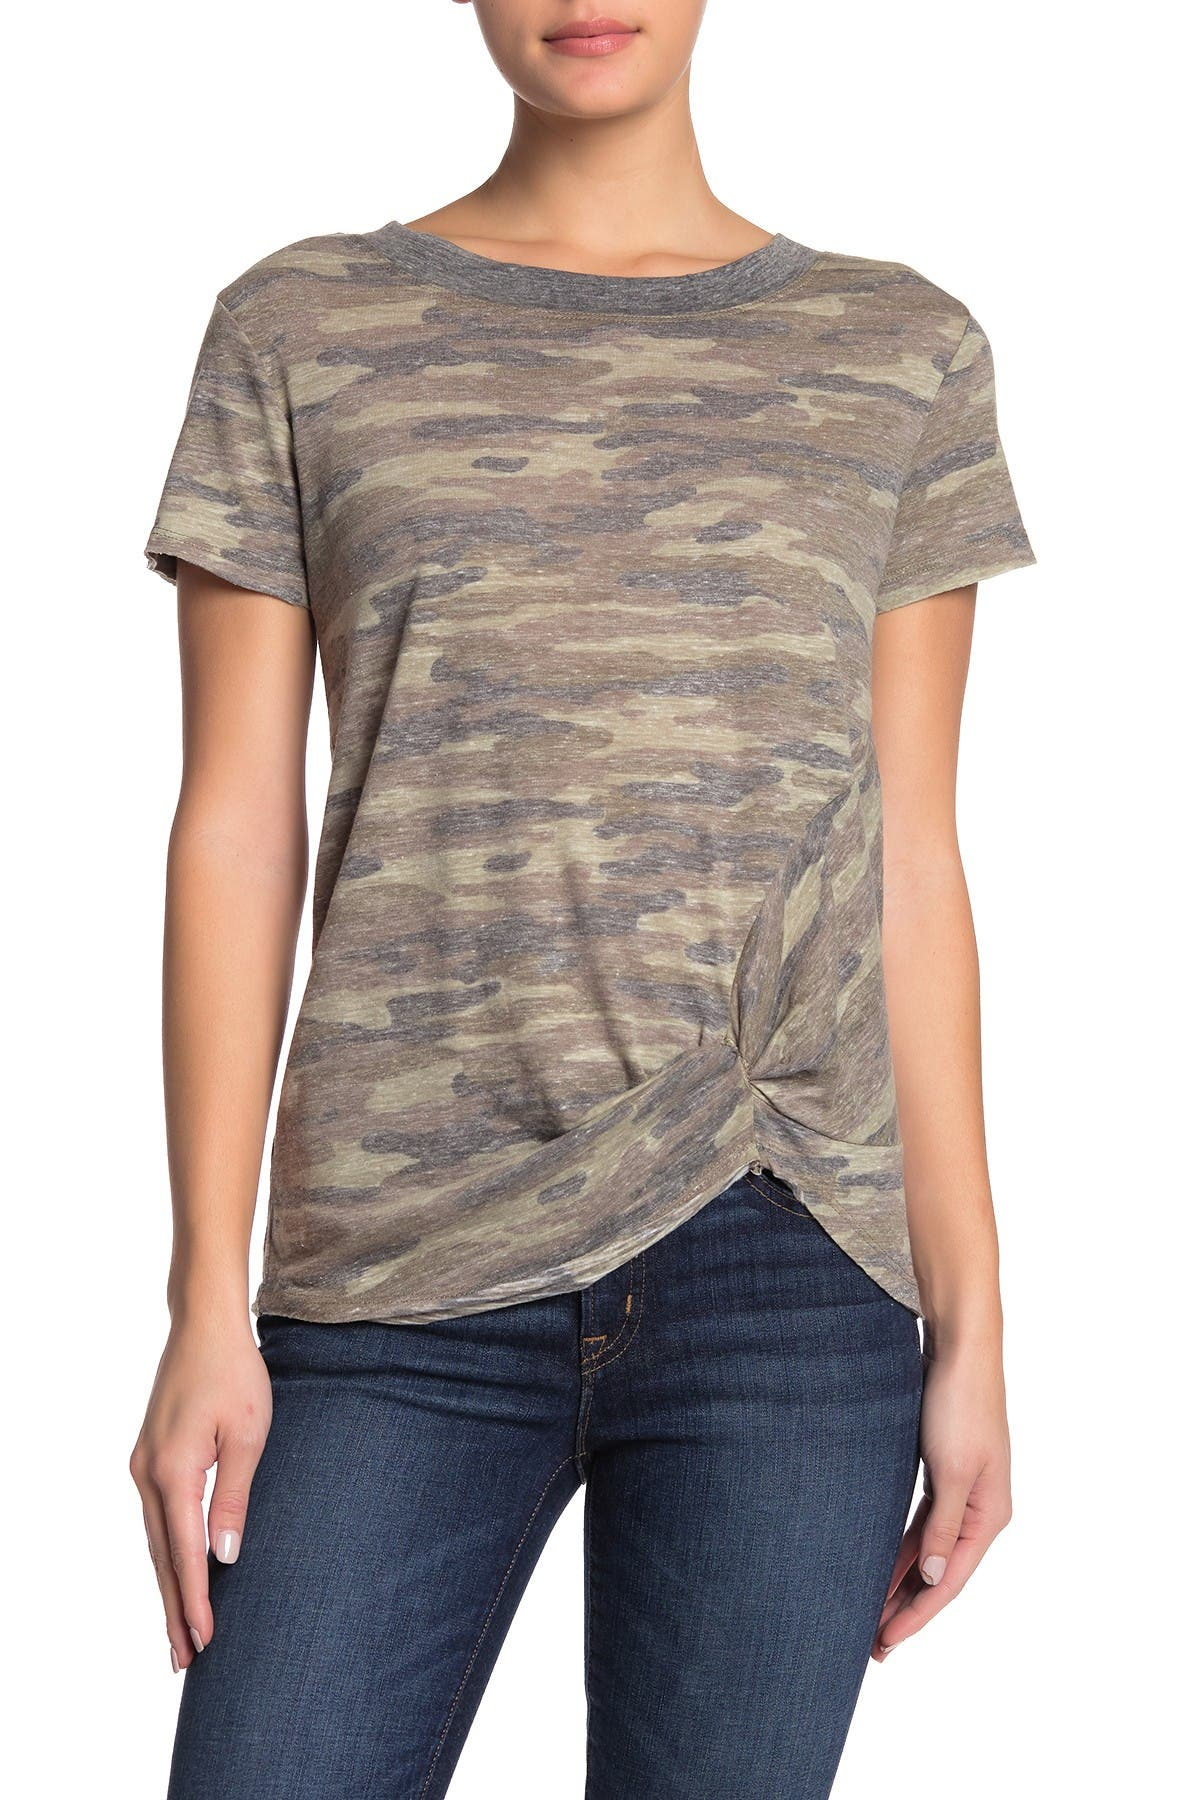 Image of C & C California Twist Hem Camo Print Ringer T-Shirt